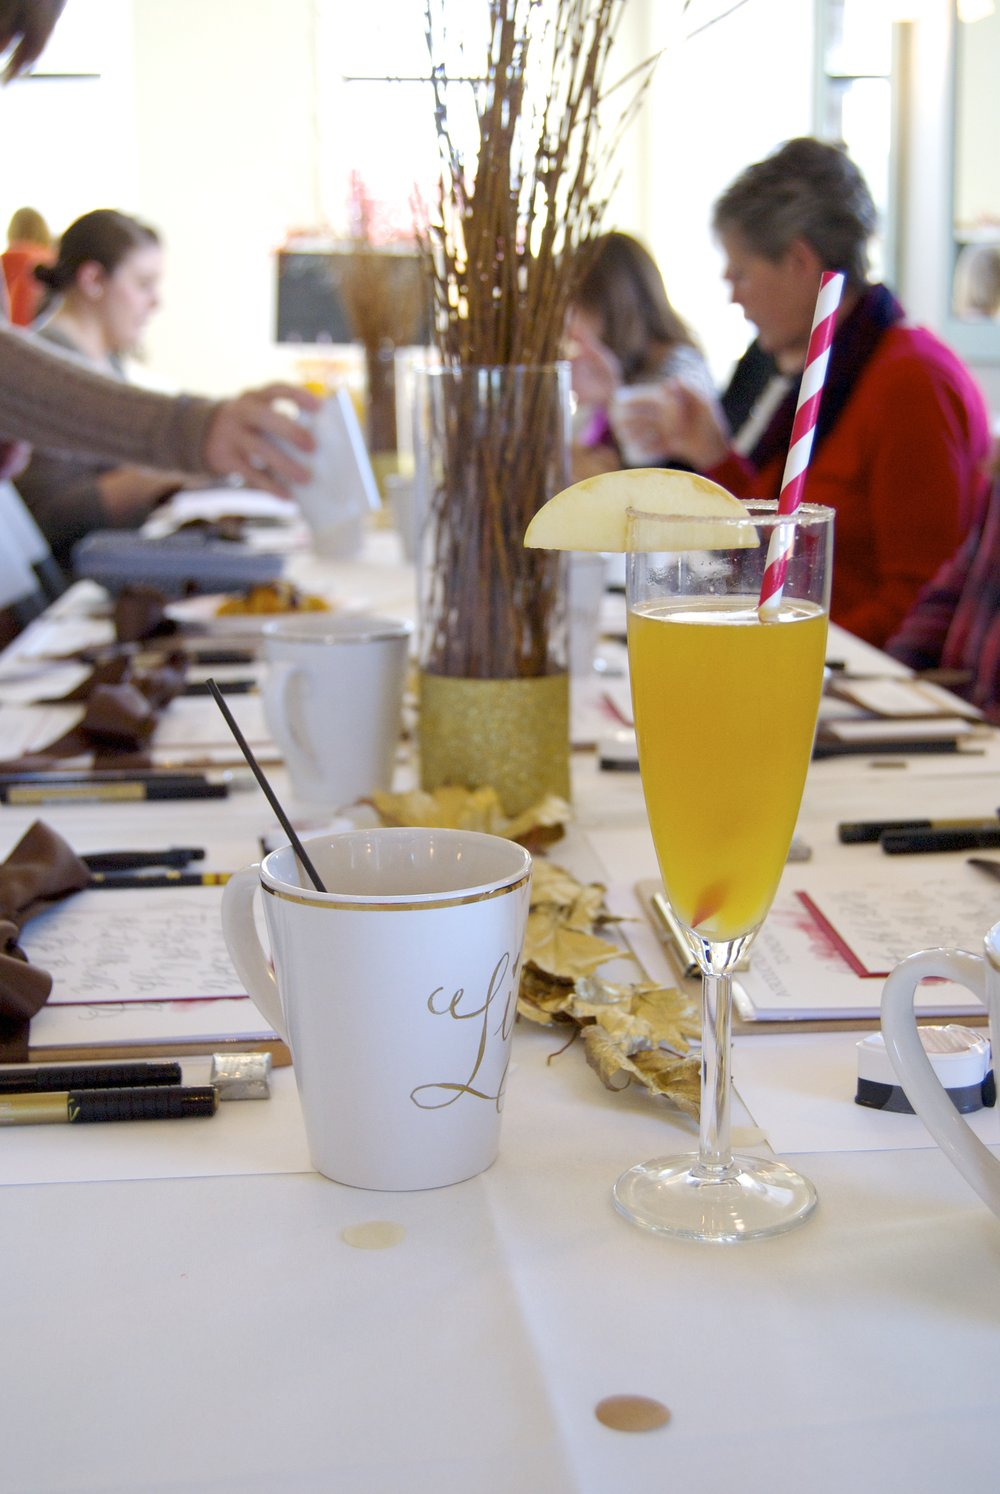 Workshop Table with Mimosas and Coffee